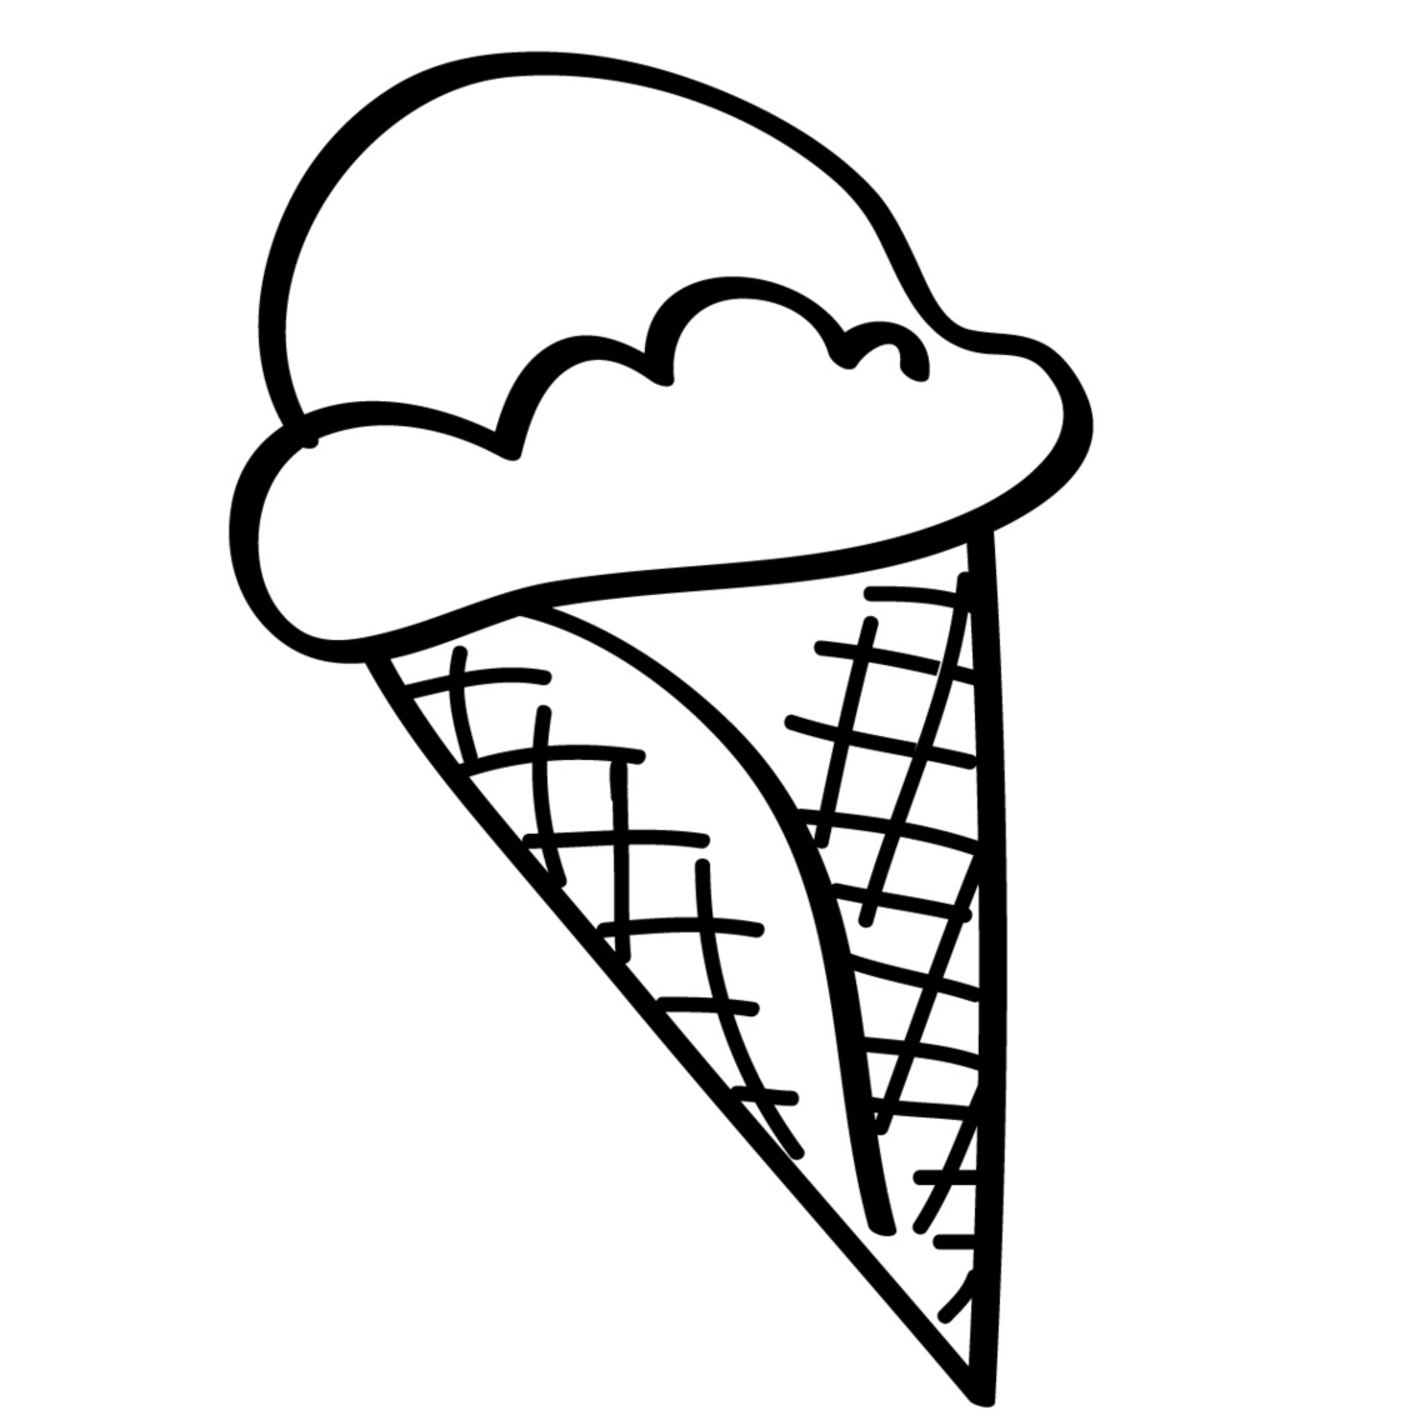 ice cream coloring pages 2 ice cream coloring pages 3 ice cream